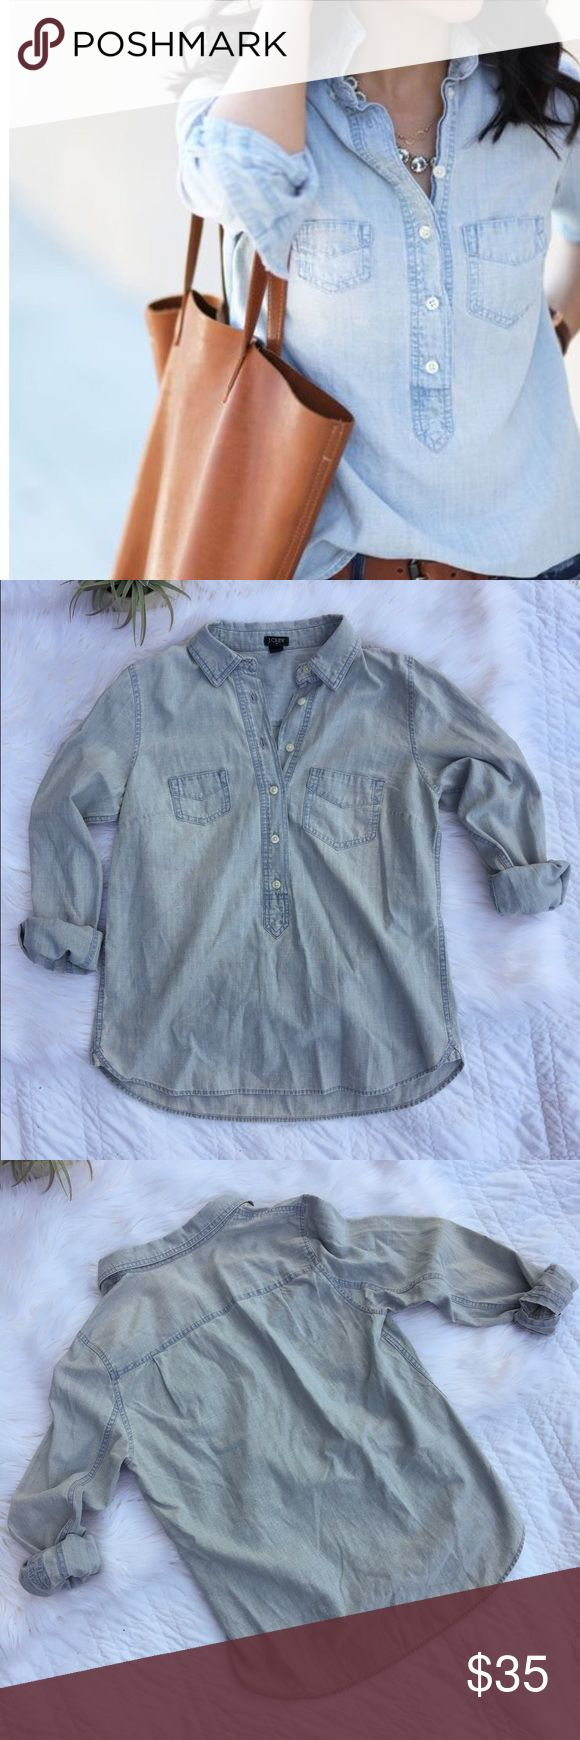 •J. Crew Chambray Top• J. Crew long sleeve quarter button up chambray top. Chambray tops are a must for any closets.   •size: small •color/print: blue chambray     •quarter button up •long sleeve chambray top •worn once, excellent condition  •model photo found via Pinterest  •No trades(comments will politely be ignored). •15% off 2+ items 💕 J. Crew Tops Button Down Shirts